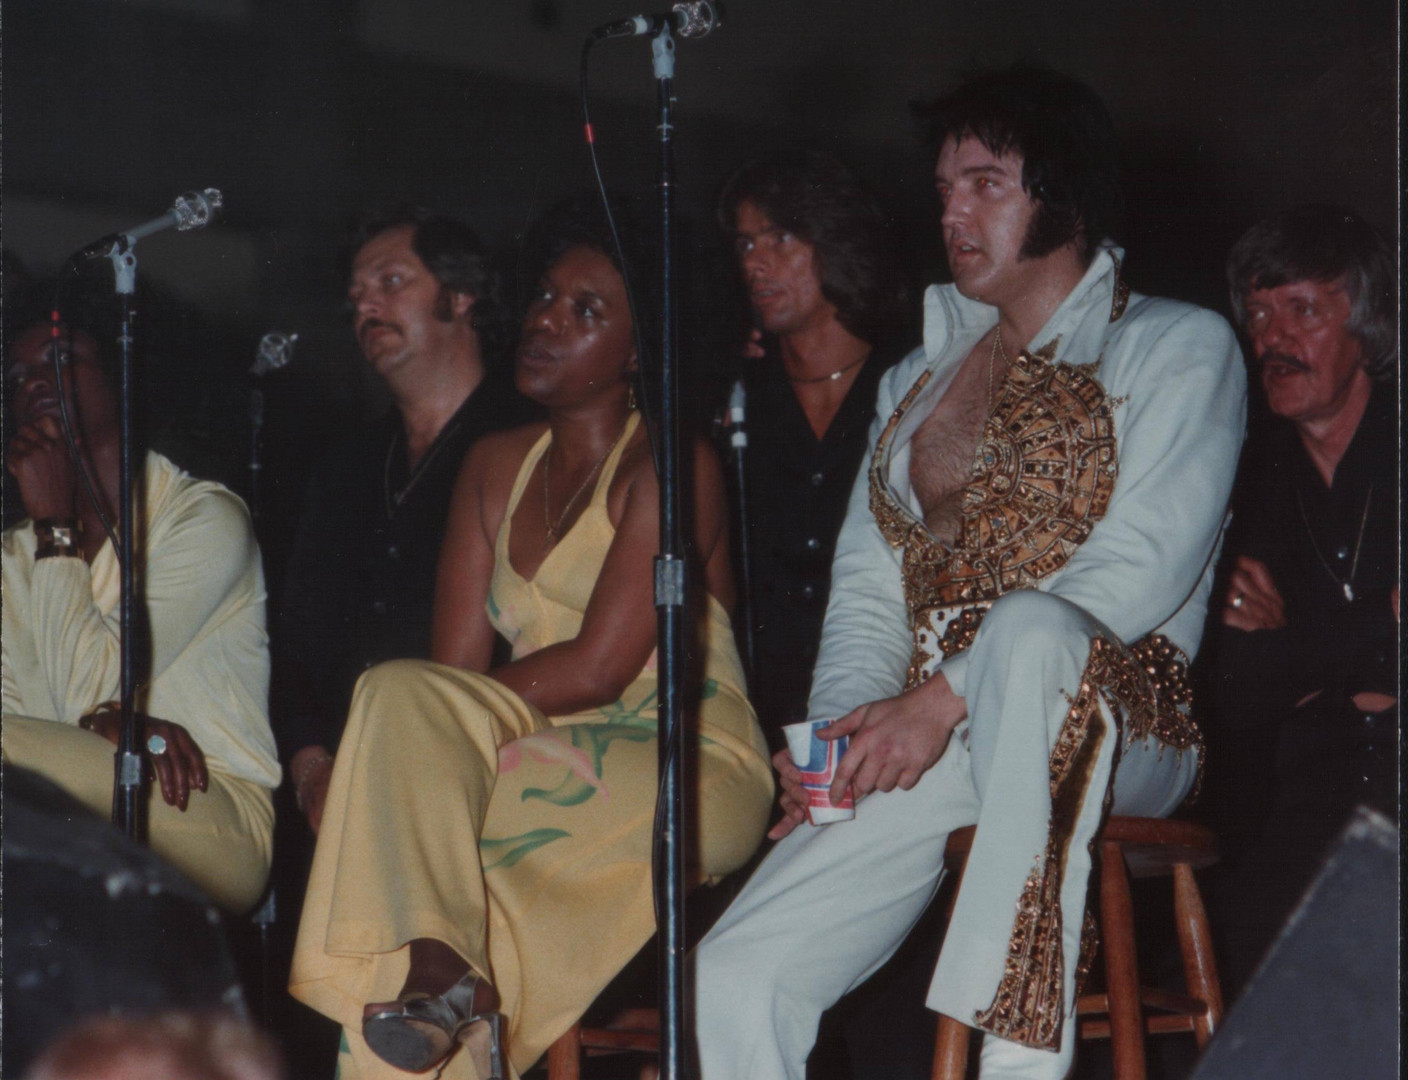 Elvis taking a rest while introducing the Band